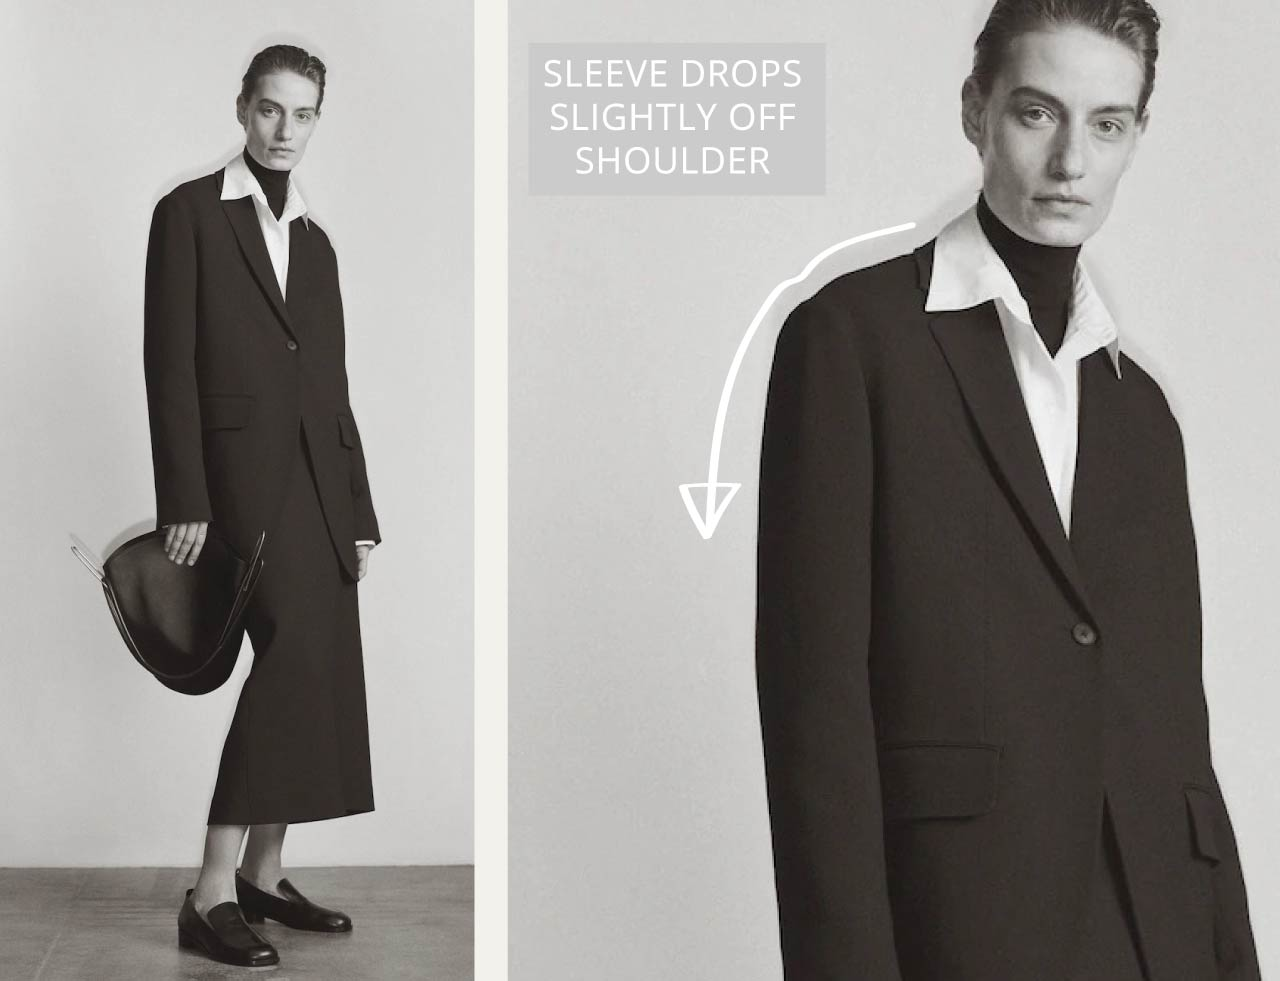 Slight Dropped Shoulders at The Row | The Cutting Class. Sleeve drops slightly off shoulder.